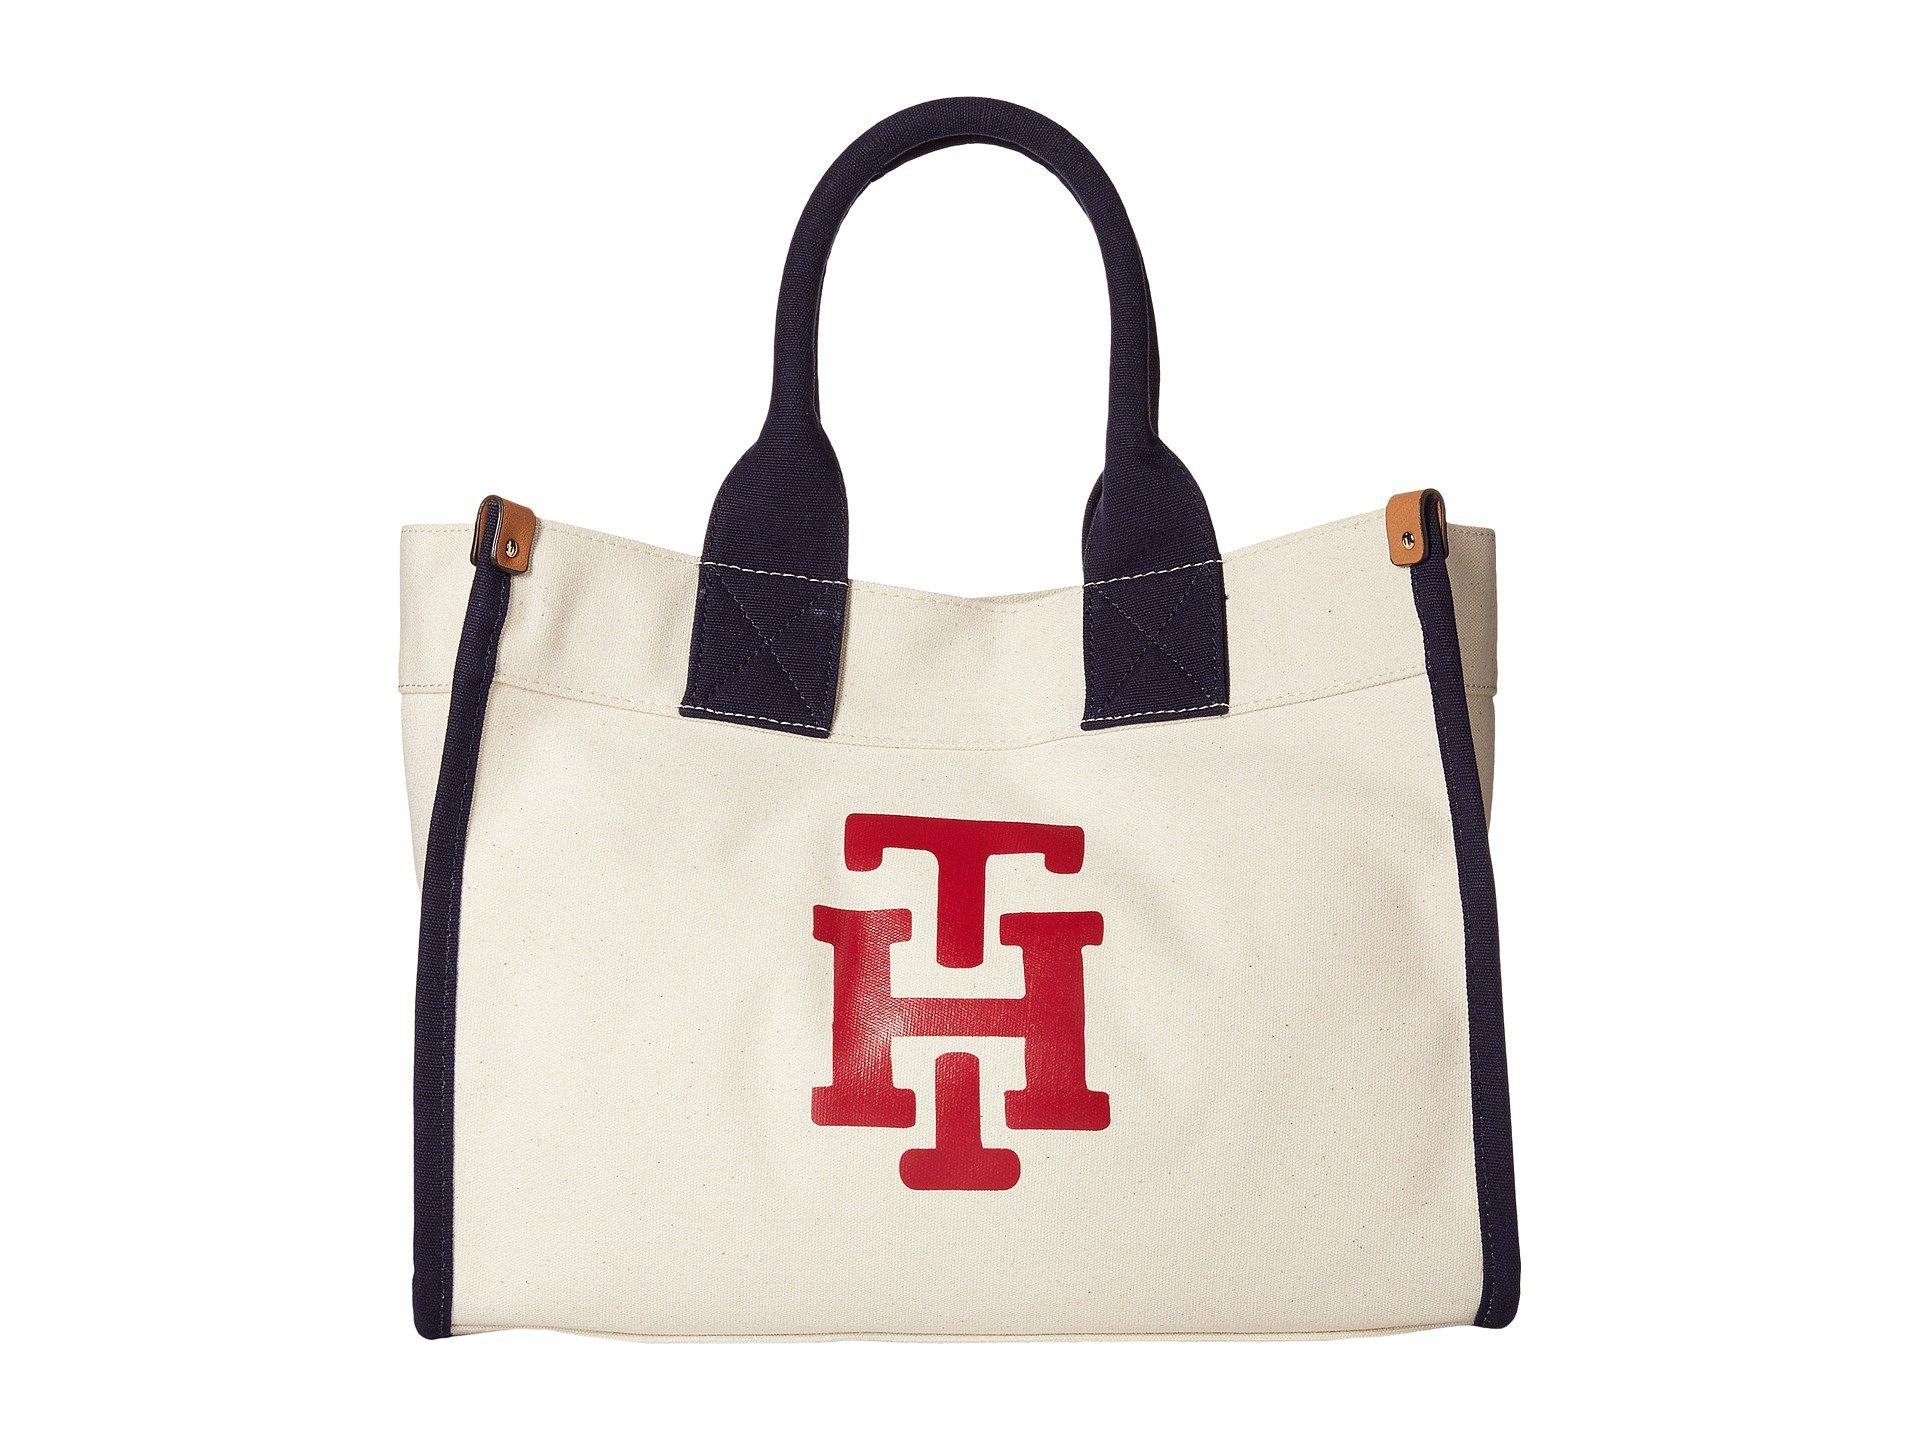 689777402ebf Lyst - Tommy Hilfiger Canvas Th Print Medium Tote in Natural